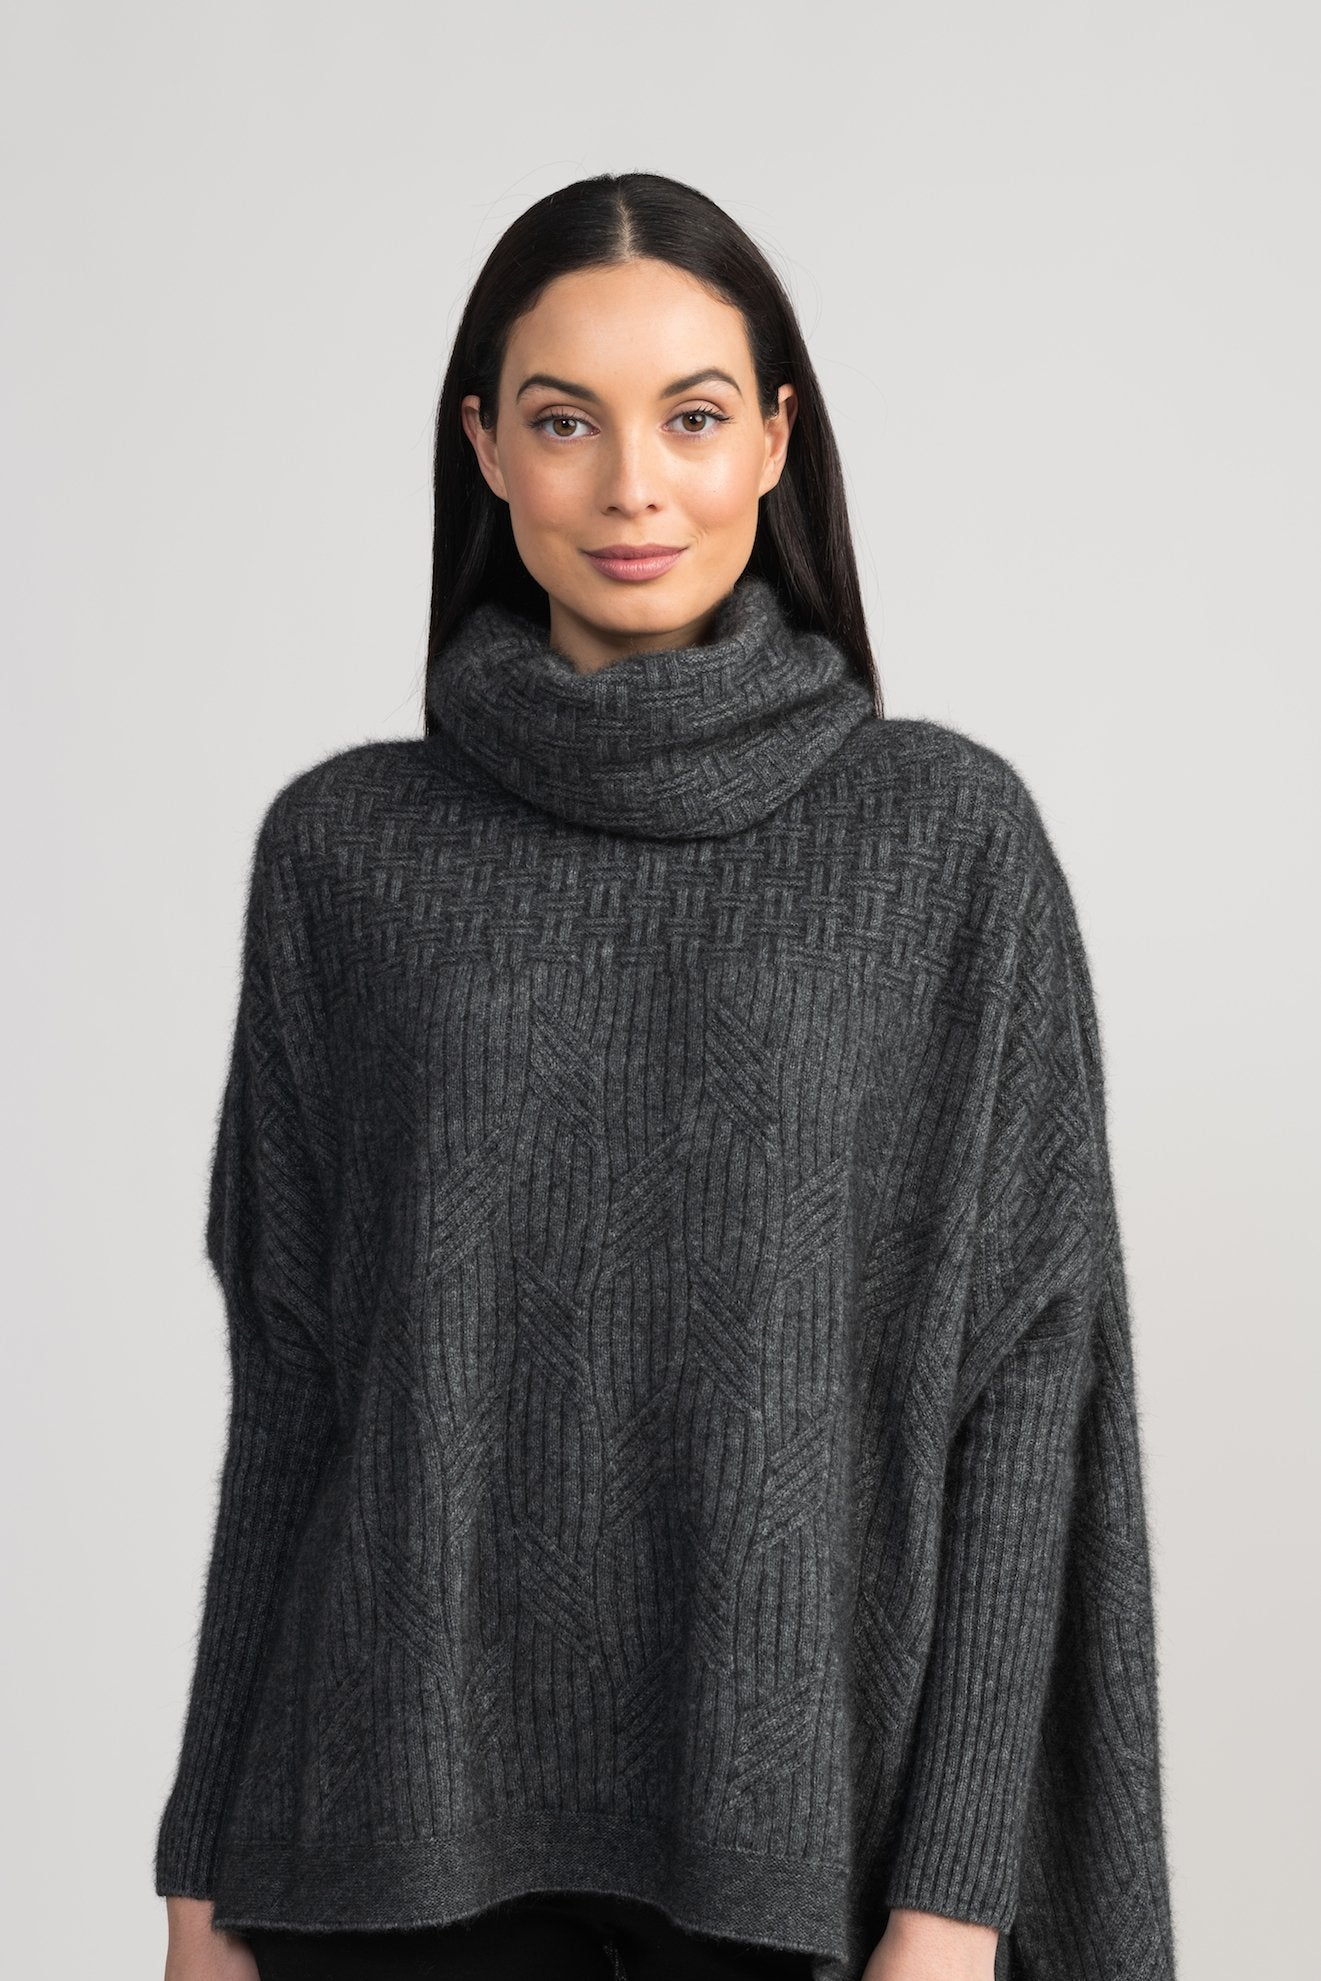 WEAVE SWEATER - Woolshed Gallery